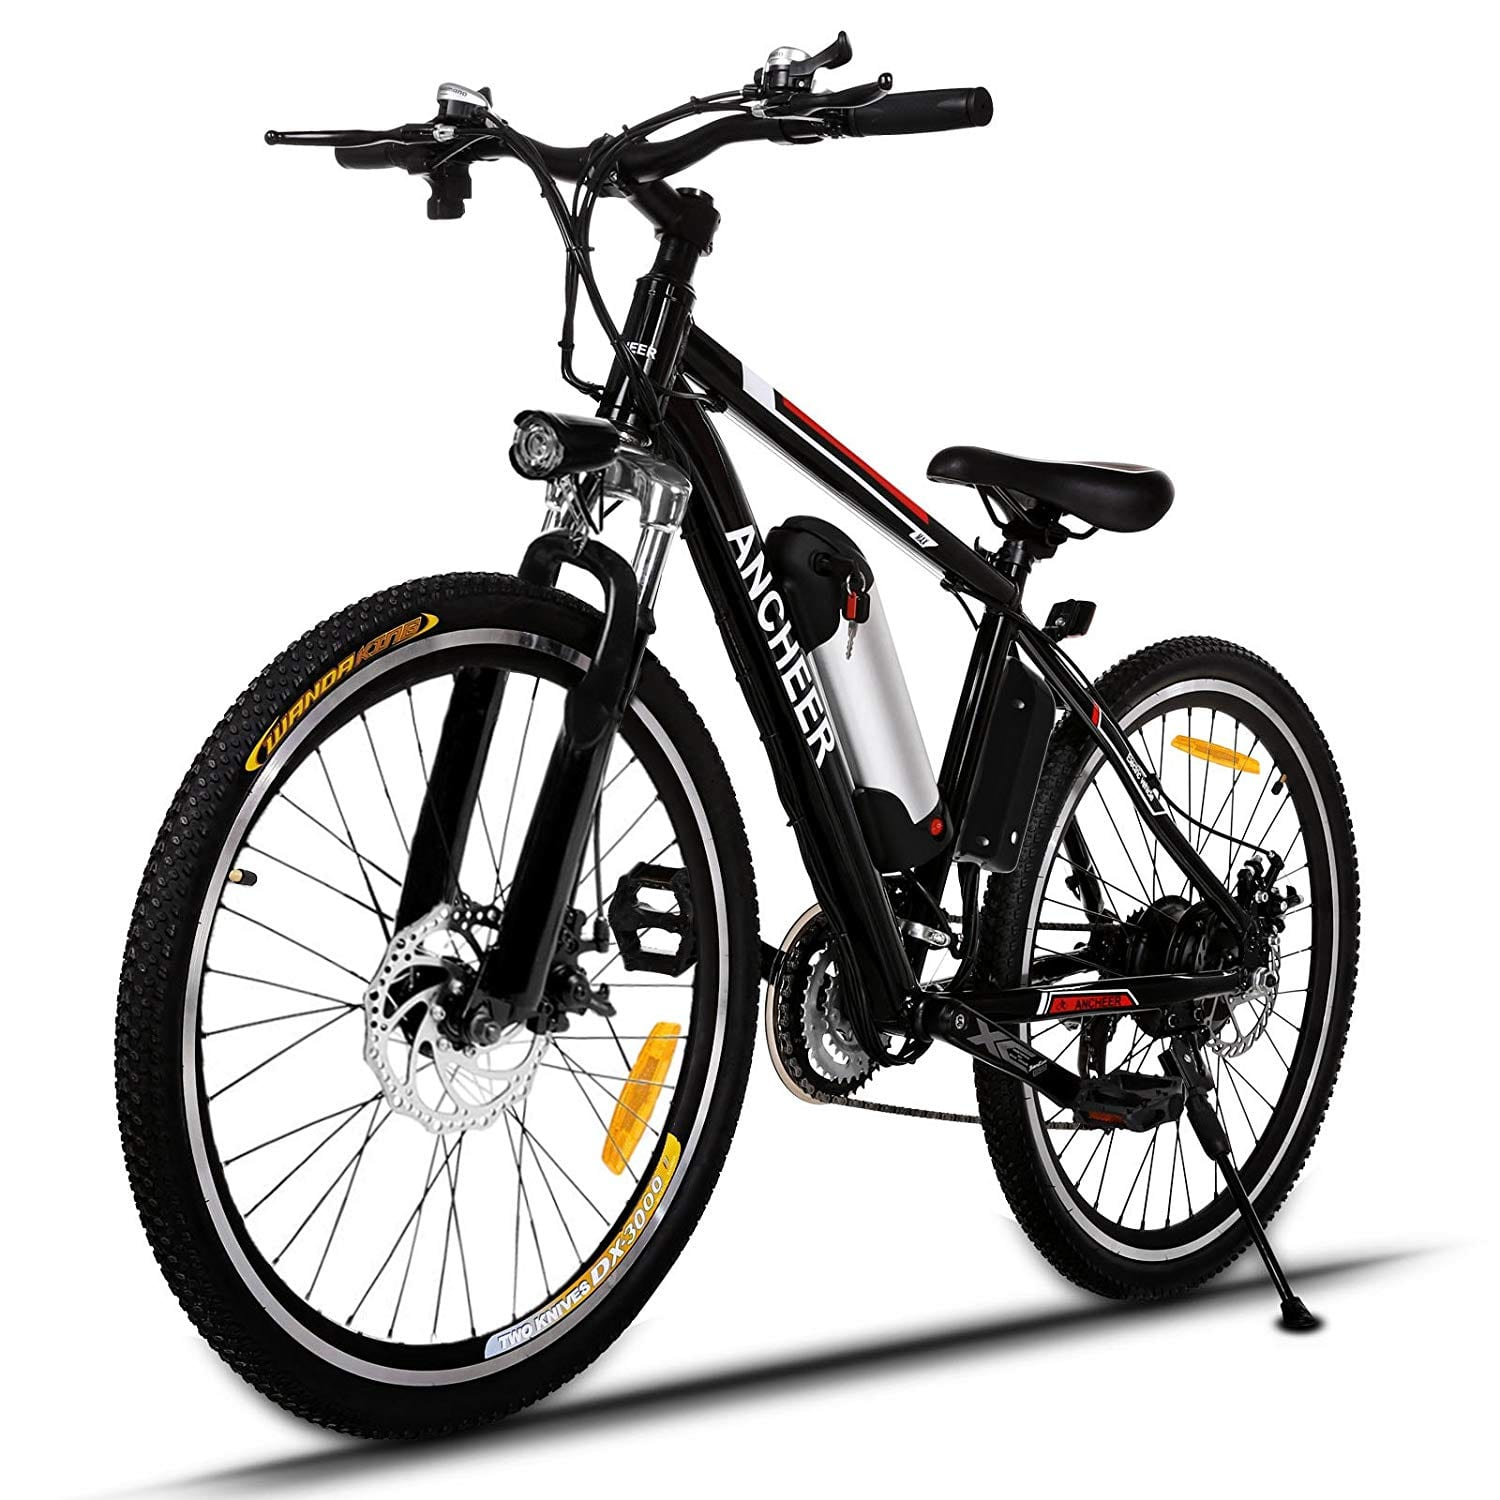 cc01f4a26d1 Top 10 Best Electric Mountain Bikes in 2019 | E-Bikes for Adults